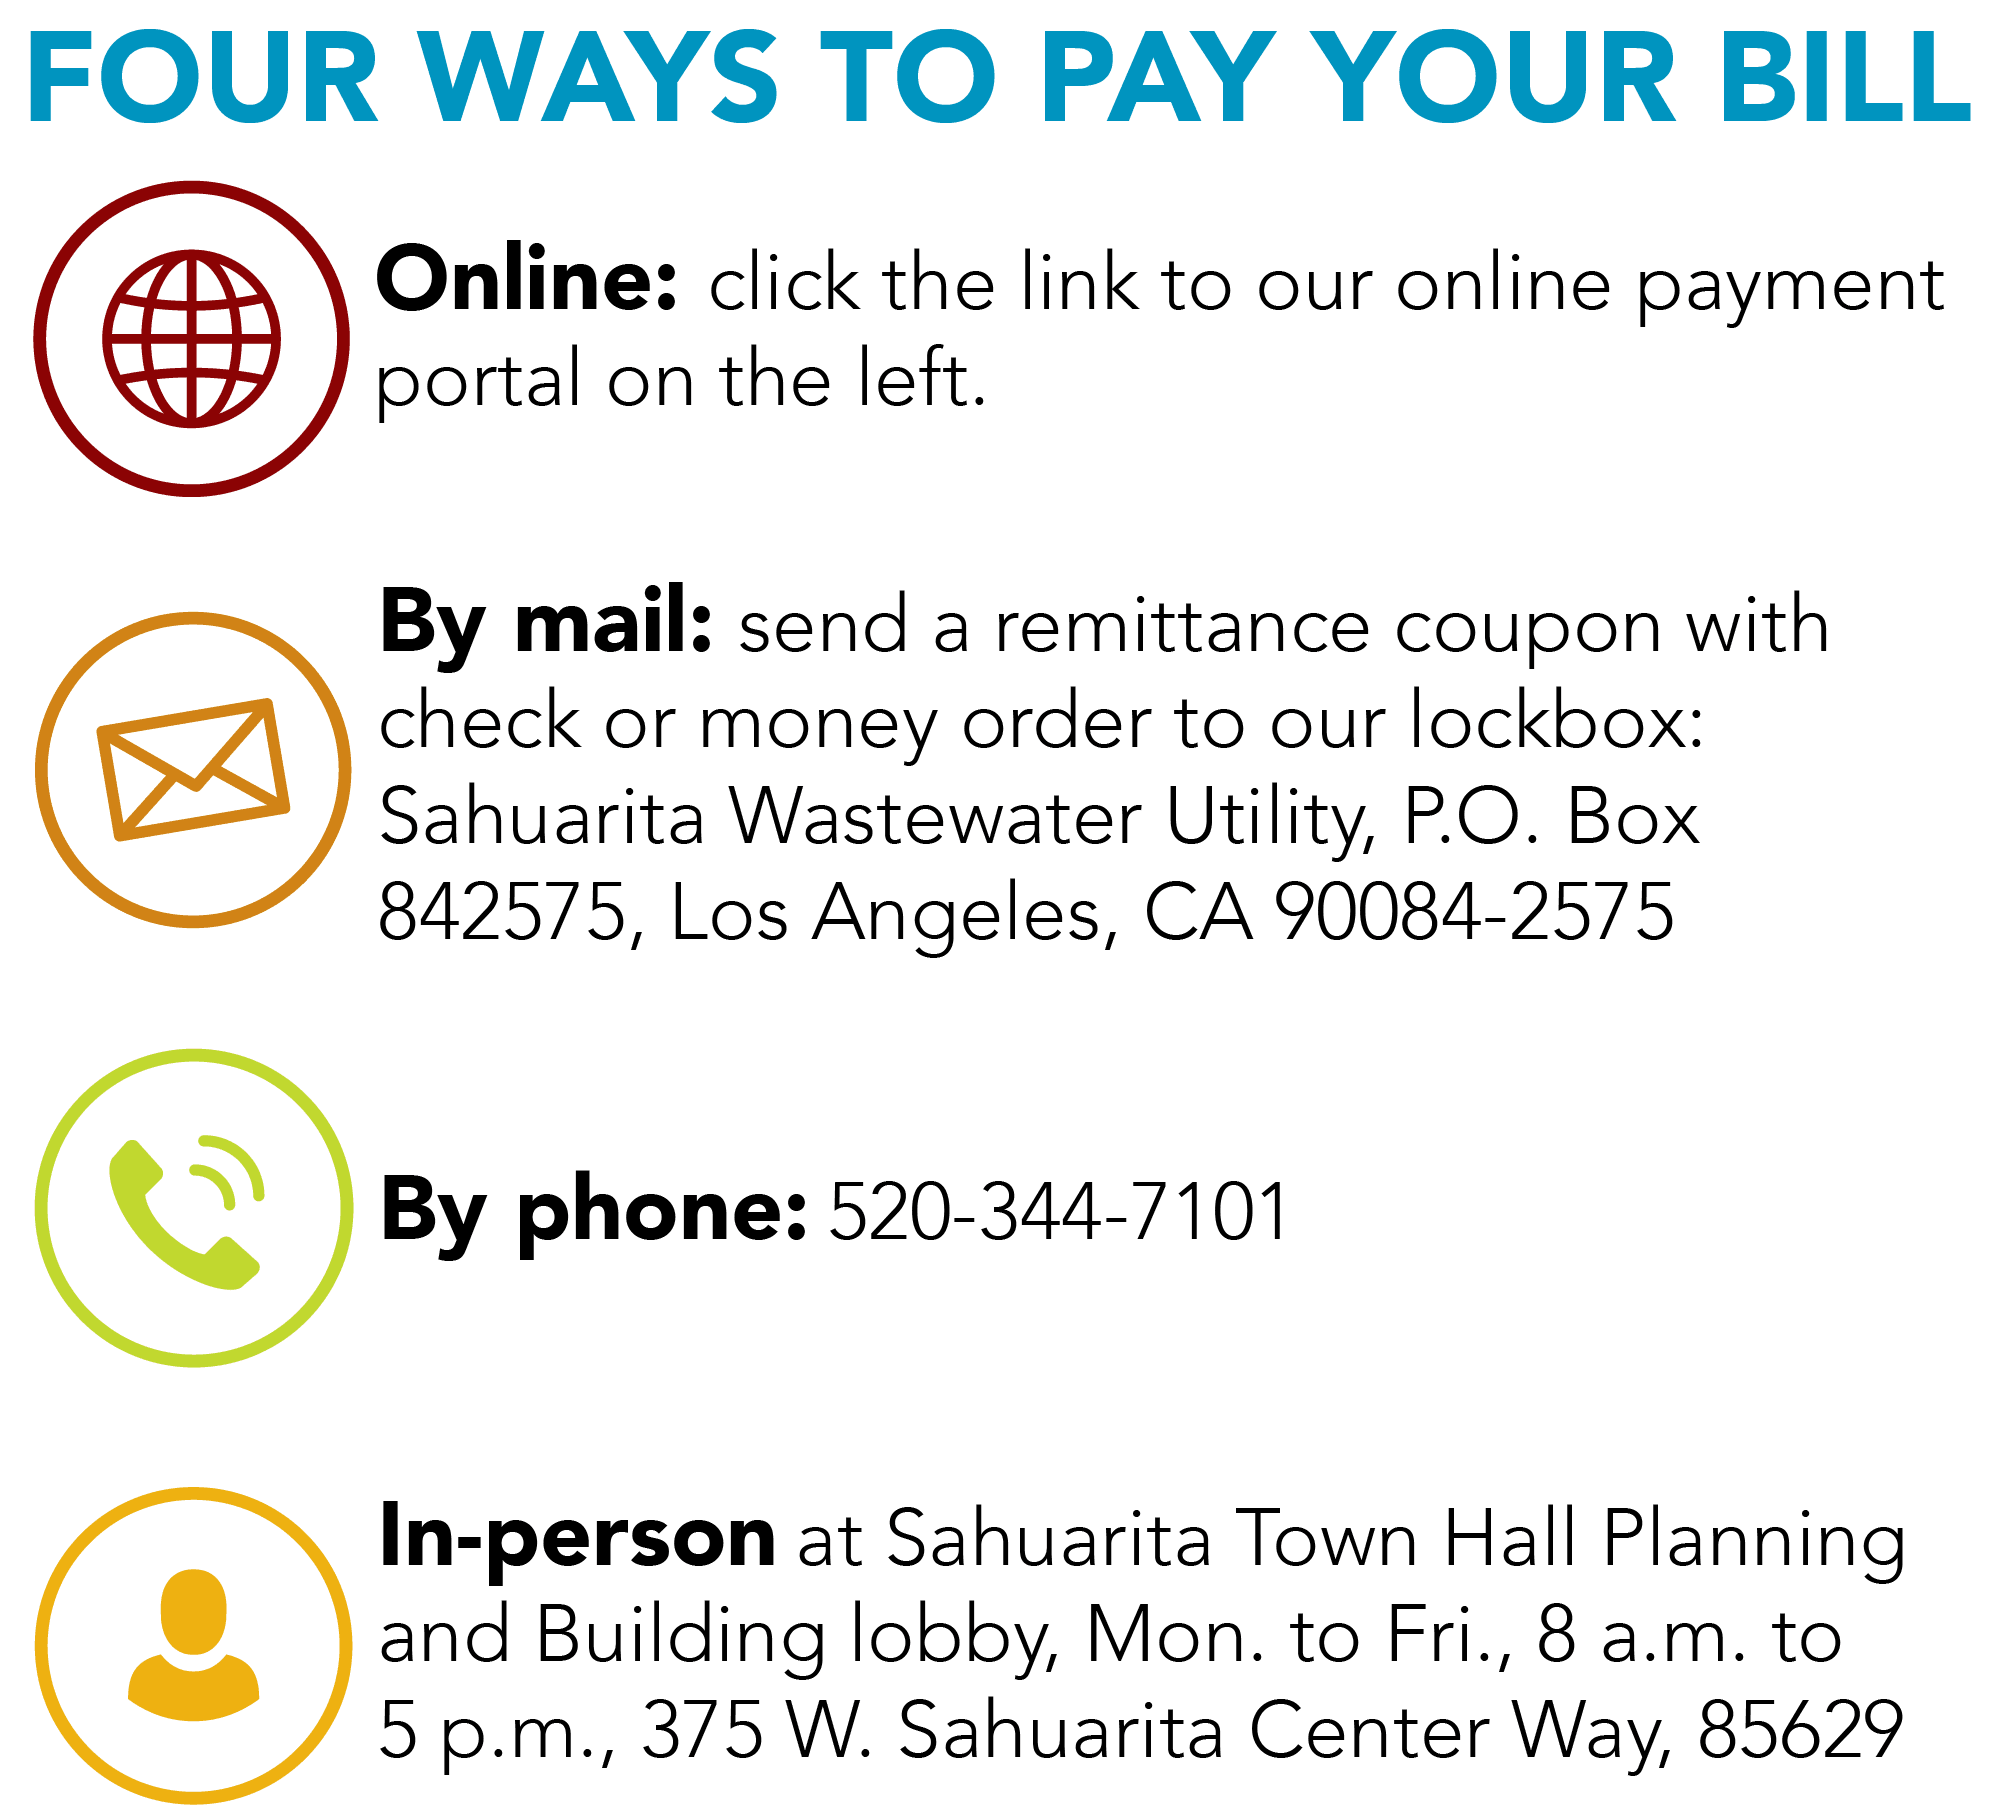 Four Ways to Pay Your Bill: online, by mail or by phone